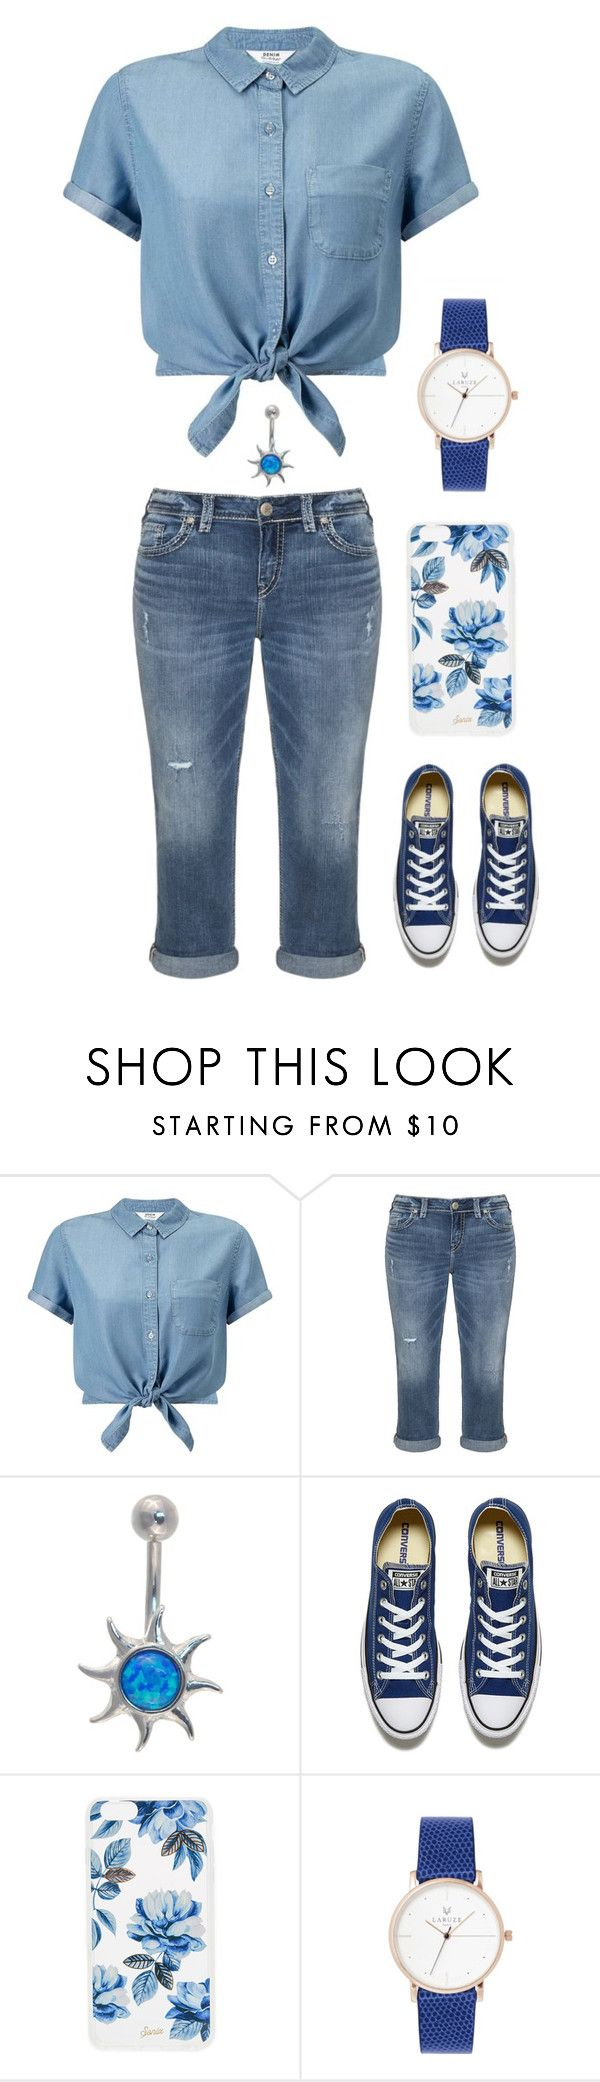 """happy summer!!!"" by niallhoranslover ❤ liked on Polyvore featuring Miss Selfridge, Silver Jeans Co., Converse and Sonix"